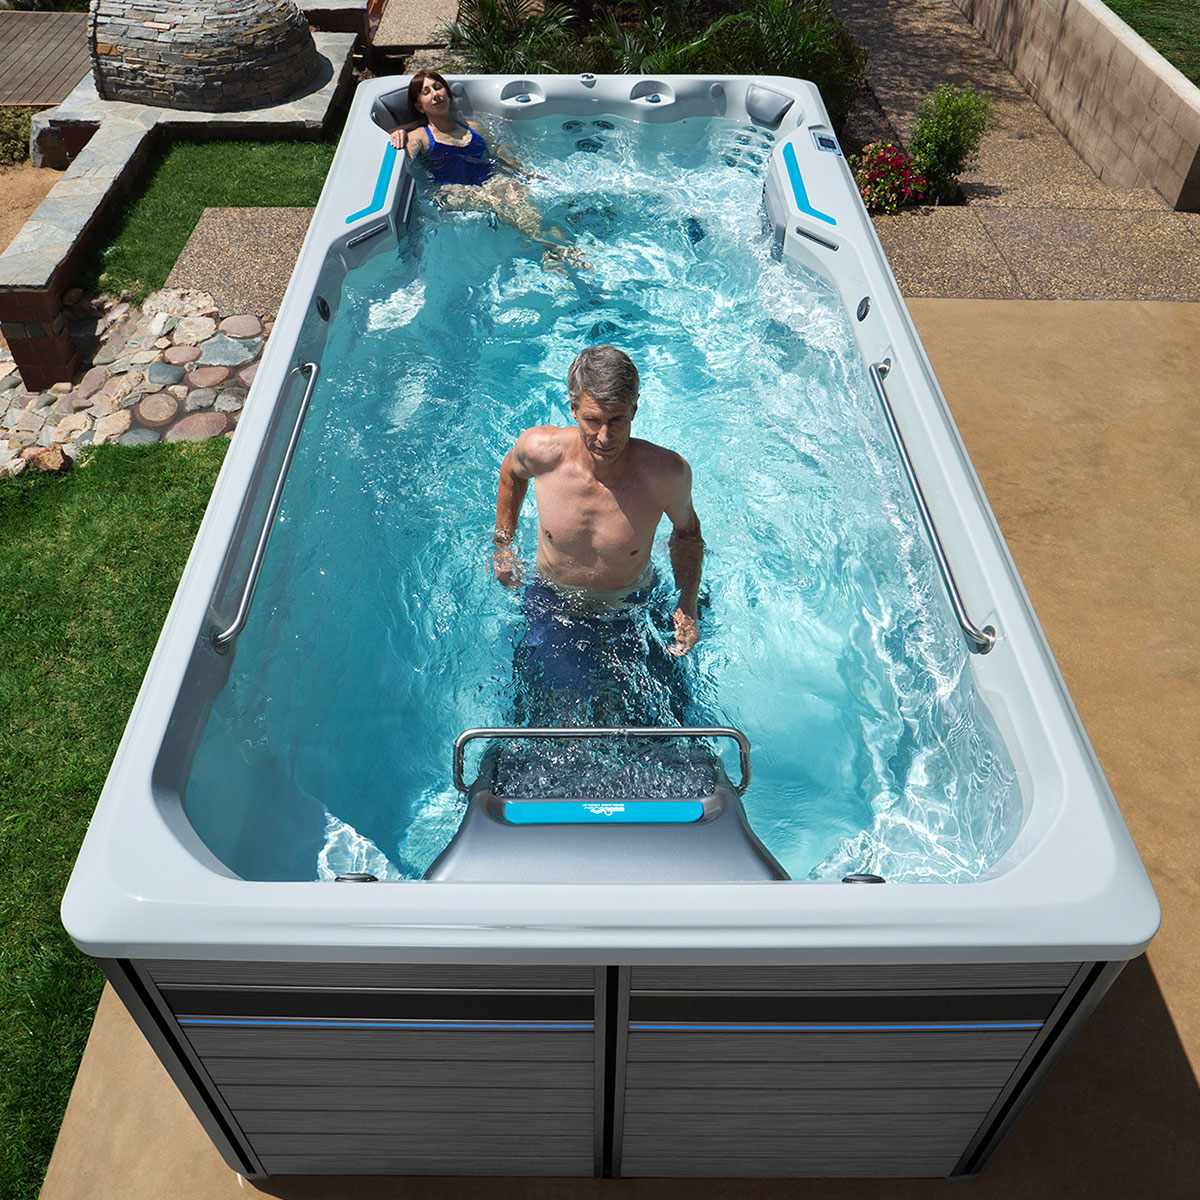 Jacuzzi Endless Pool Underwater Treadmill Presqueisle